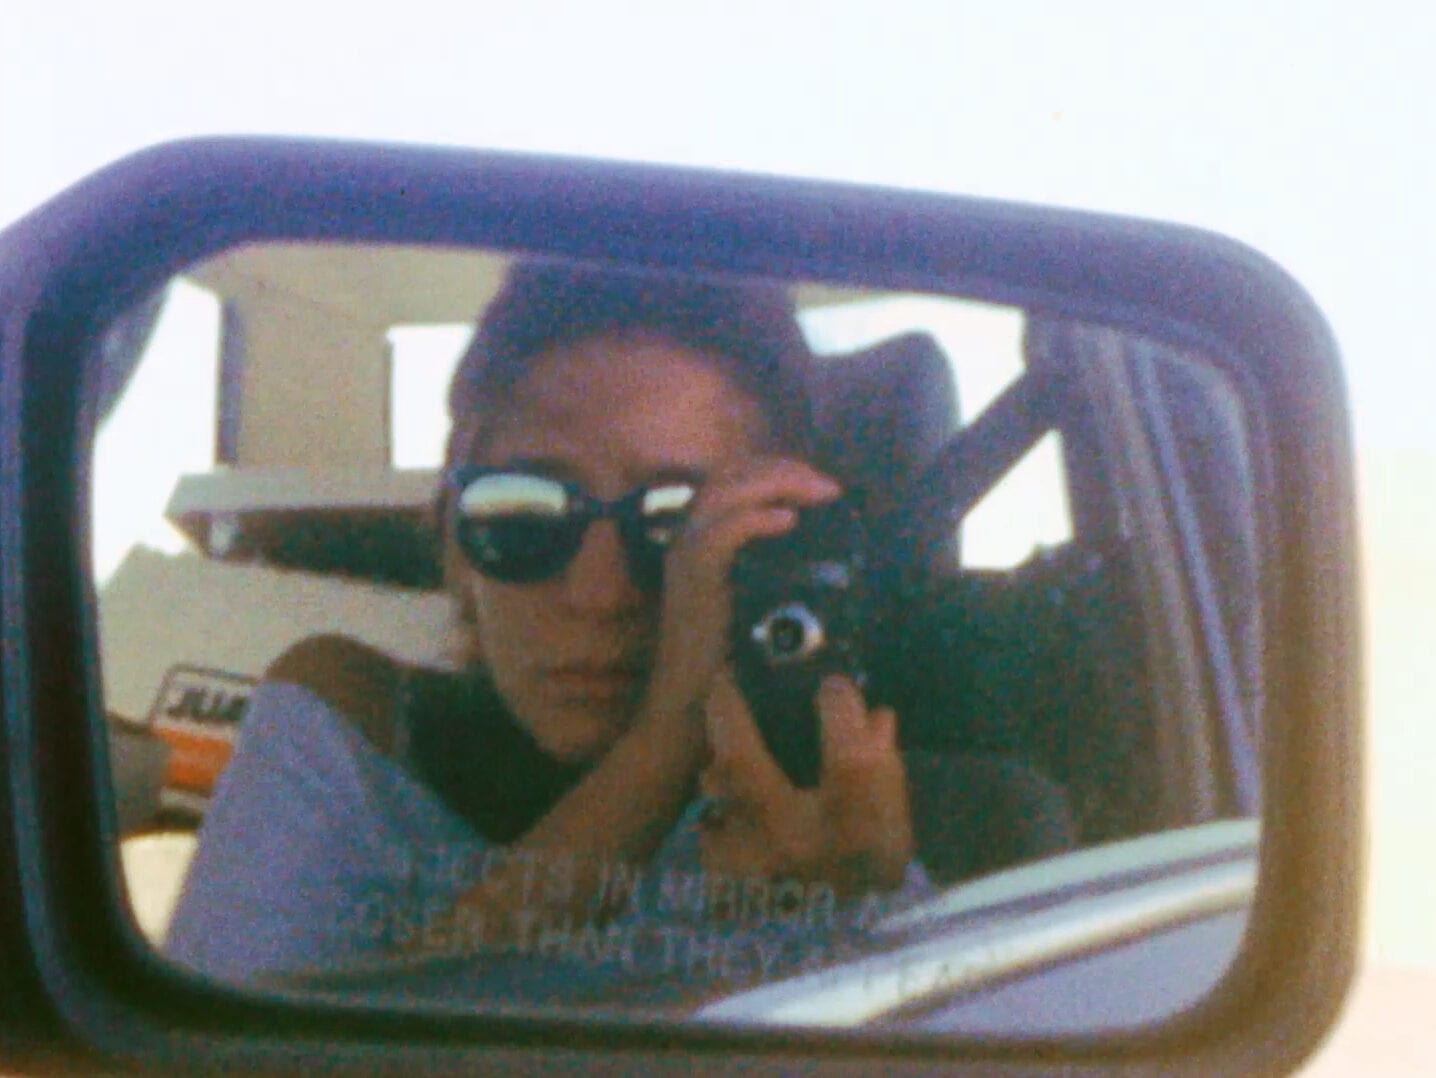 Still From Lynne Sachs' Film About A Father Who. Lynne Is Holding A Camera In Front Of Her Face And Is Reflected In A Car's Side Mirror.